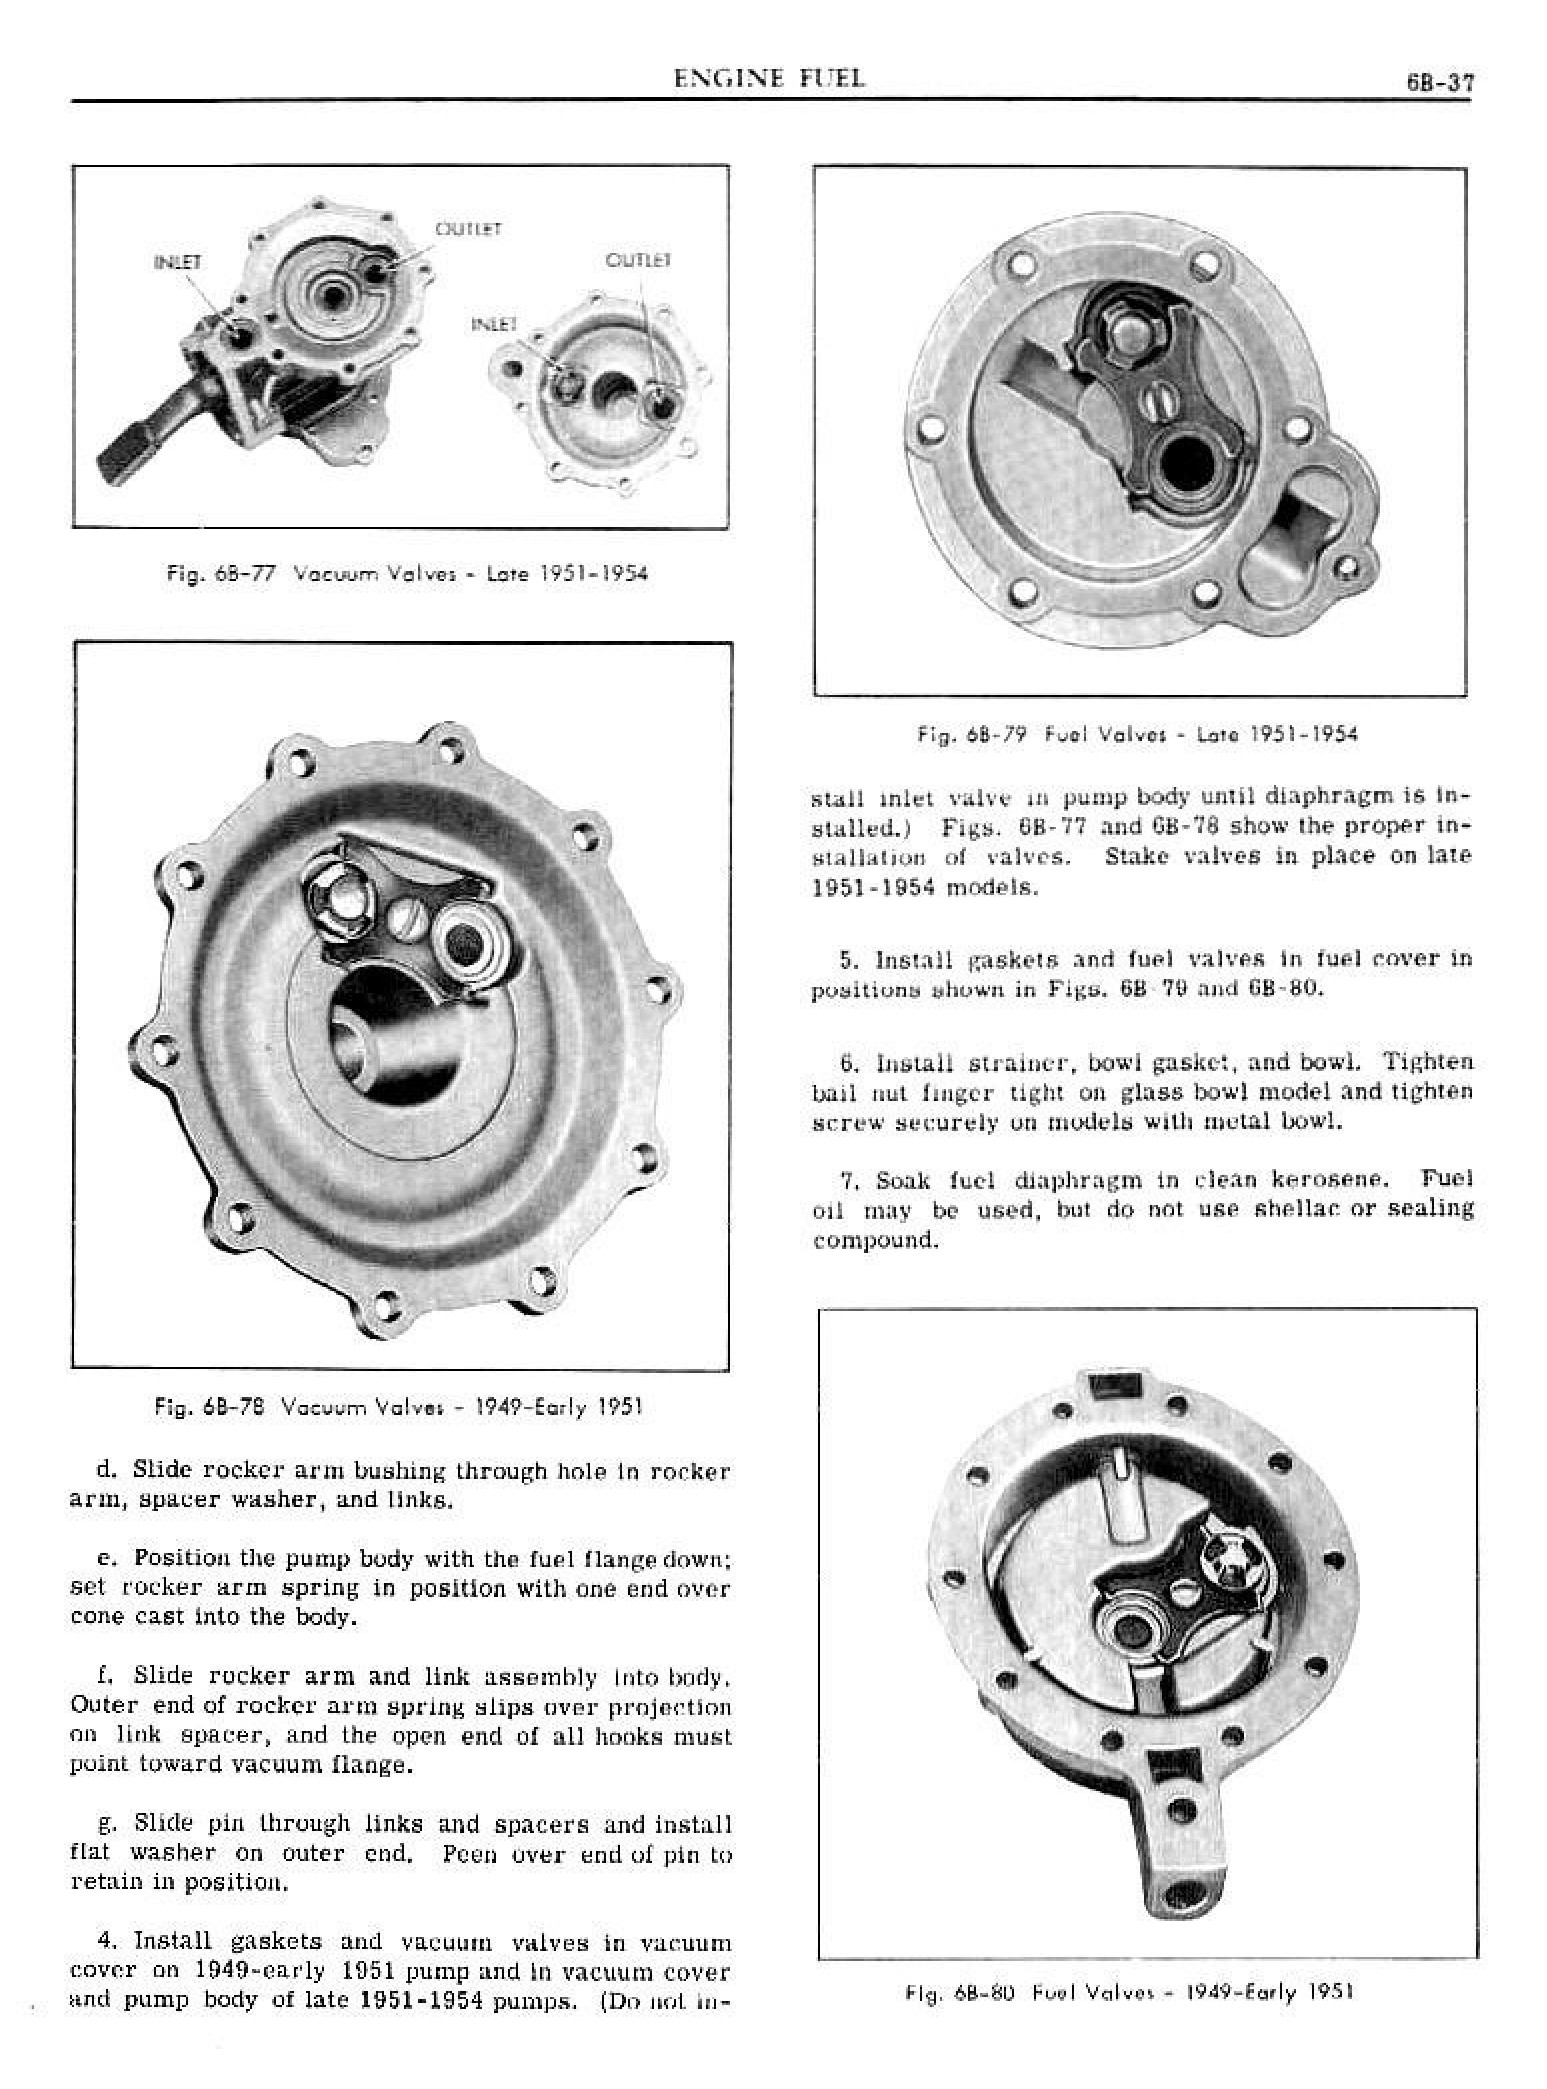 1949 Pontiac Shop Manual- Engine Fuel Page 37 of 42